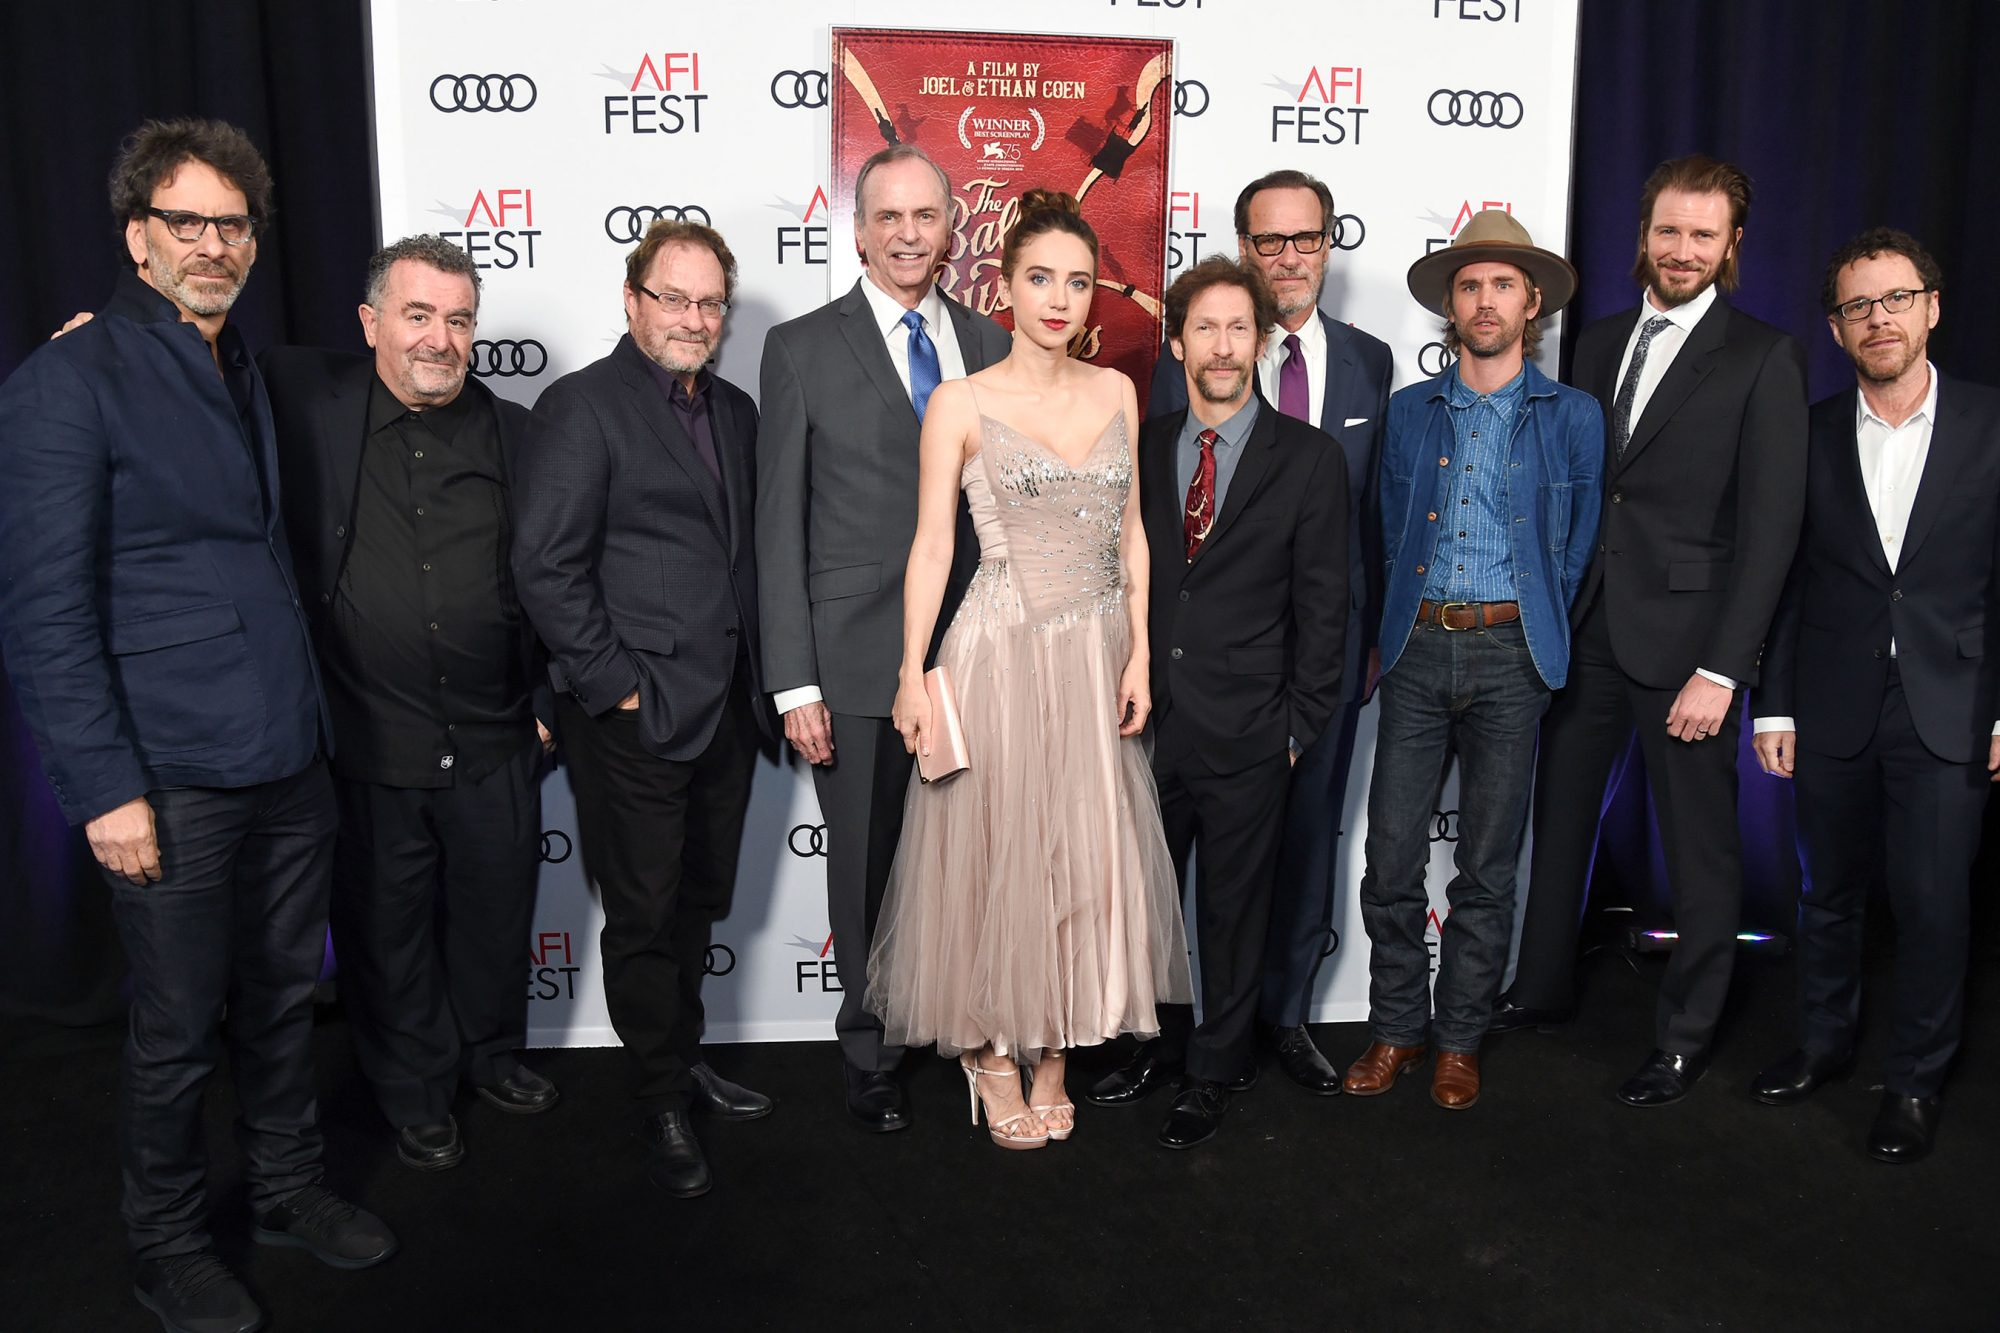 """AFI FEST 2018 - Gala Screening Of """"The Ballad Of Buster Scruggs"""""""